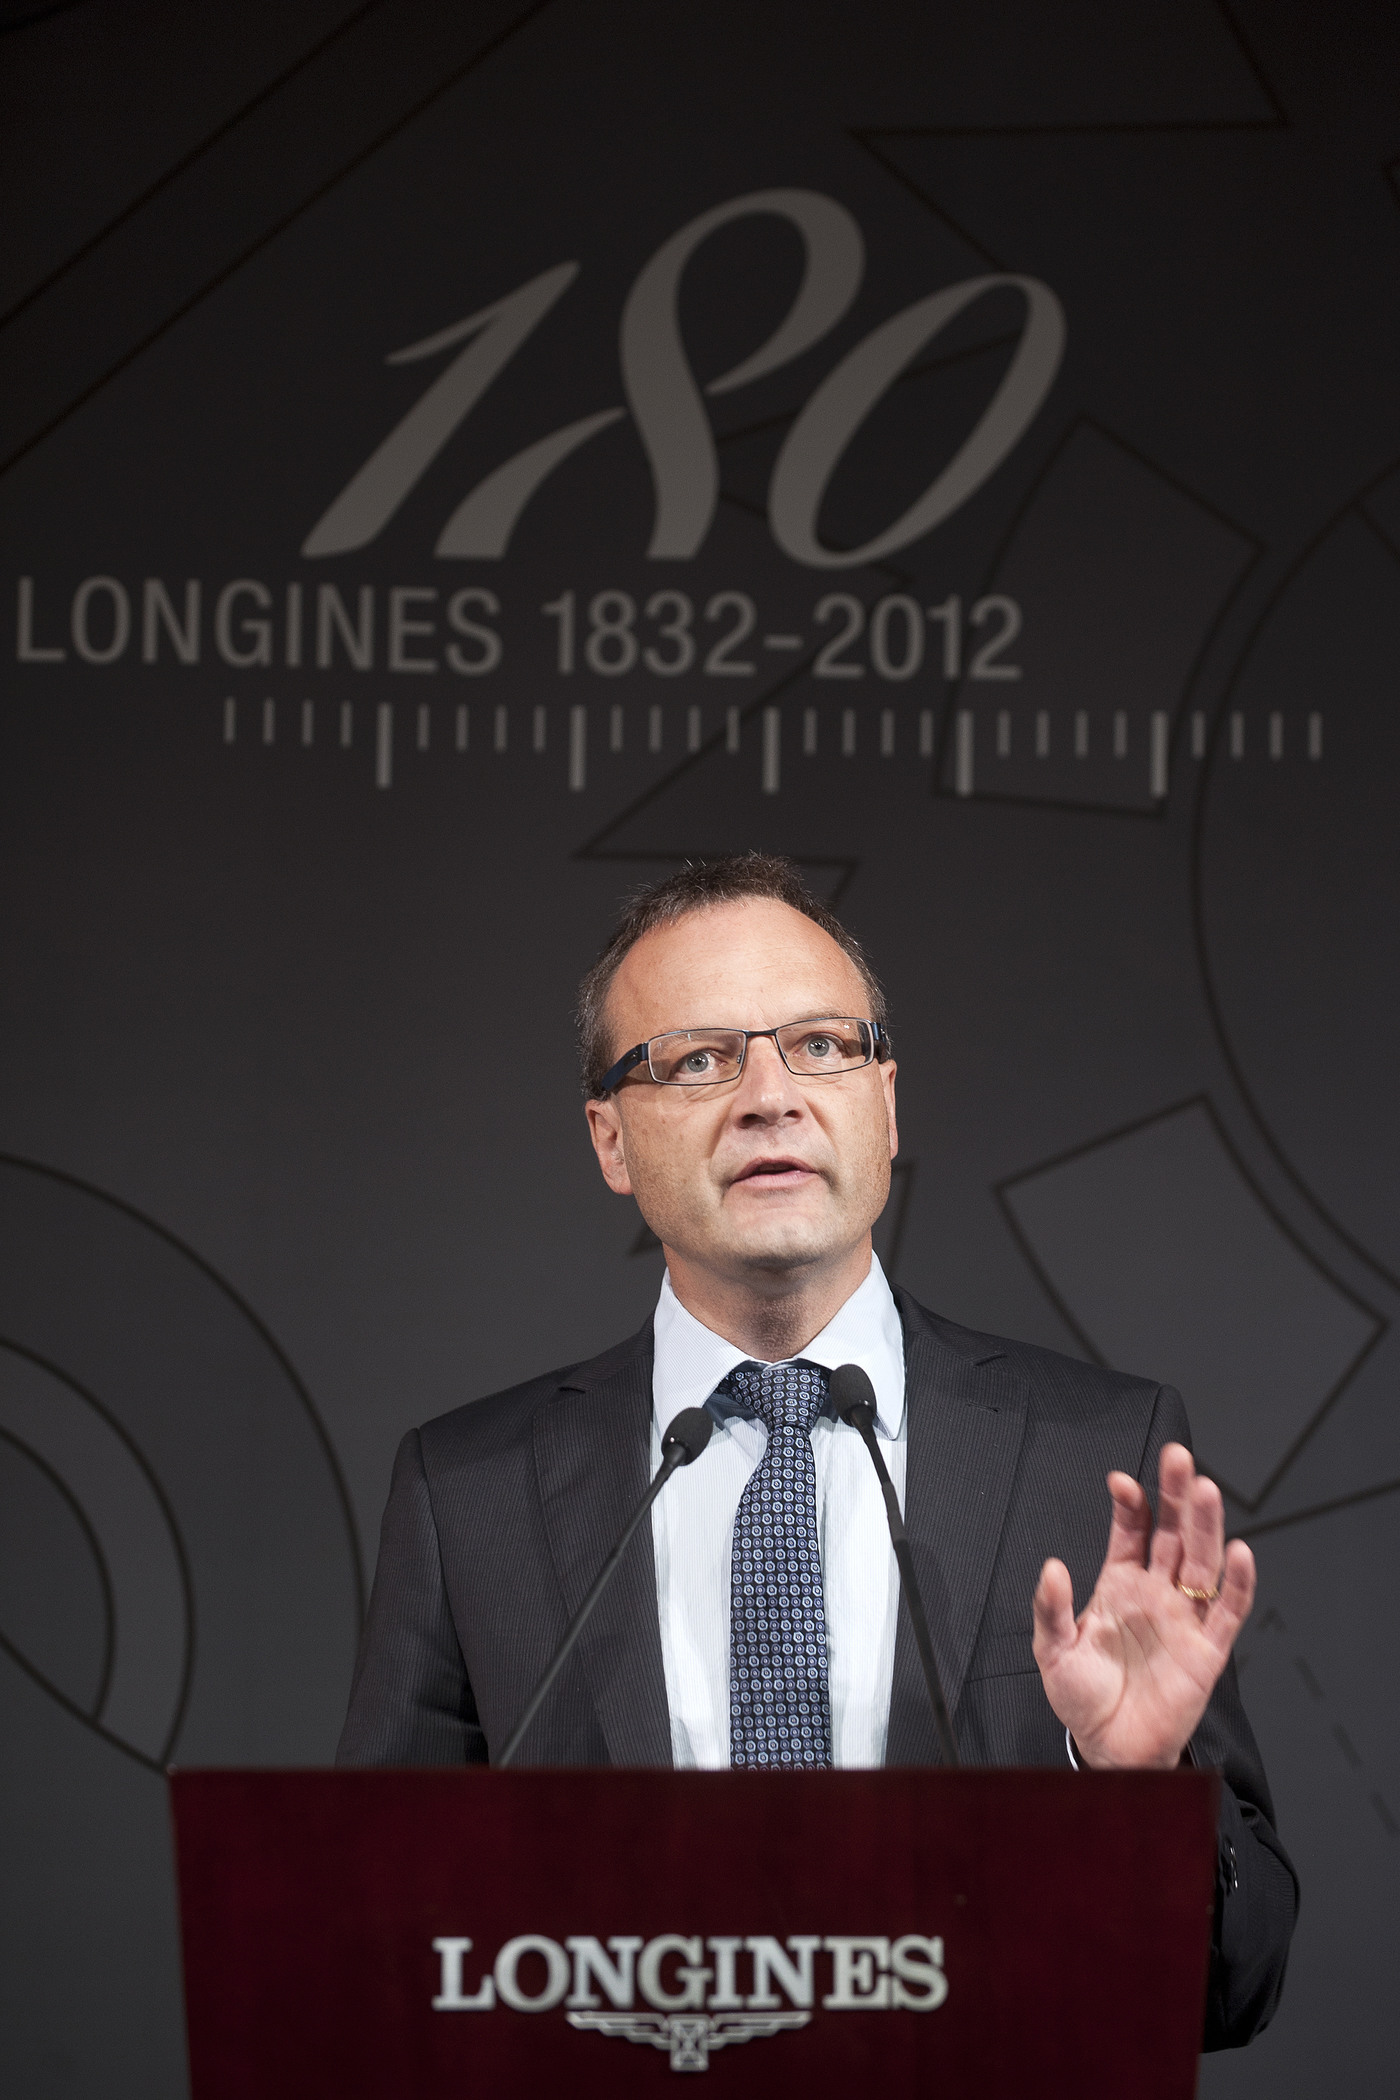 Longines Corporate Event: Longines celebrates its 180th anniversary in Saint-Imier! 8